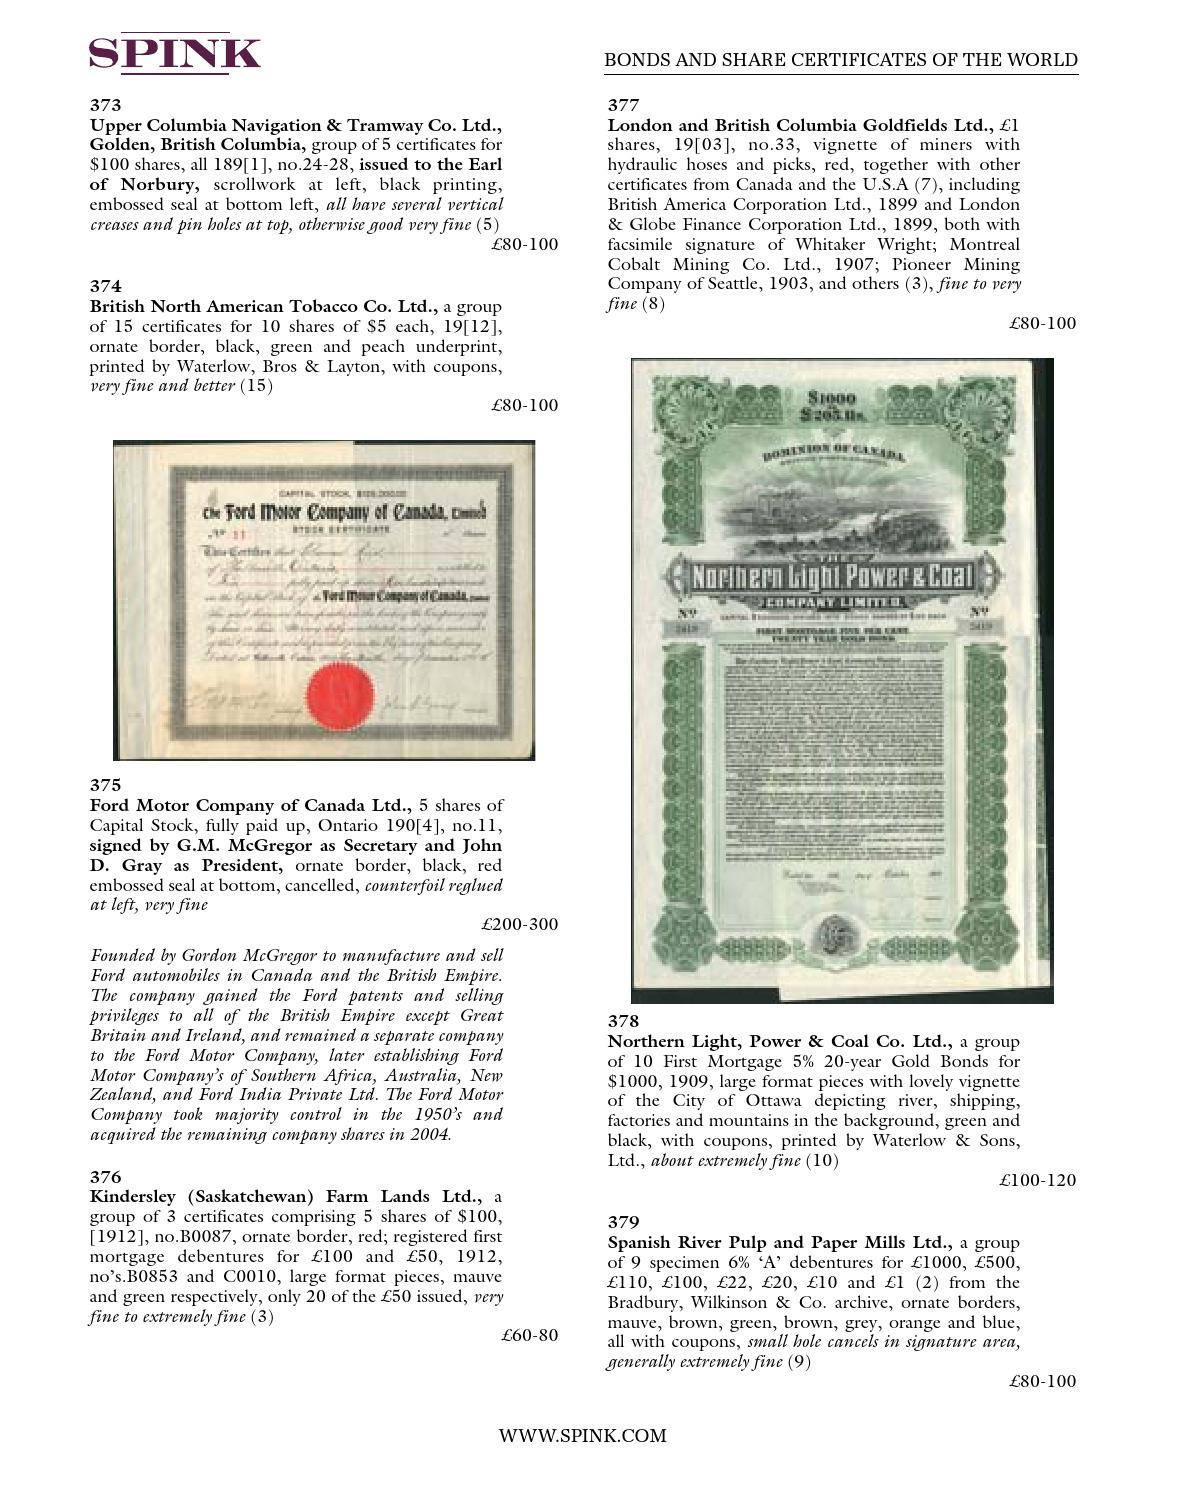 Bonds and Share Certificates of the World - 14017 by Spink